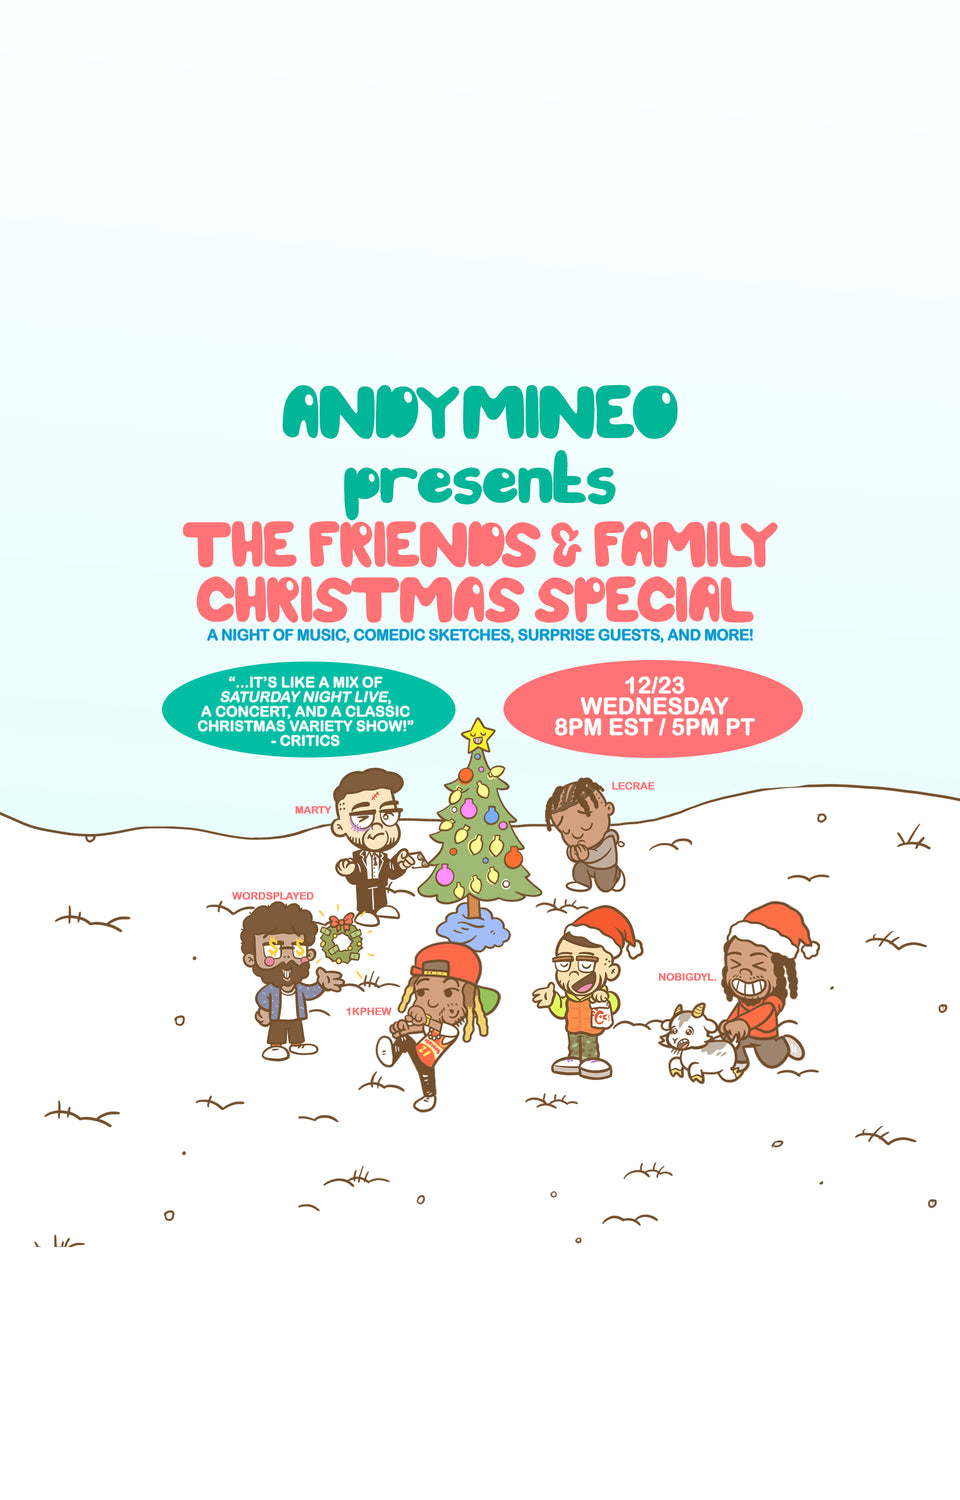 2020 F&F Christmas Special [E-TICKET]